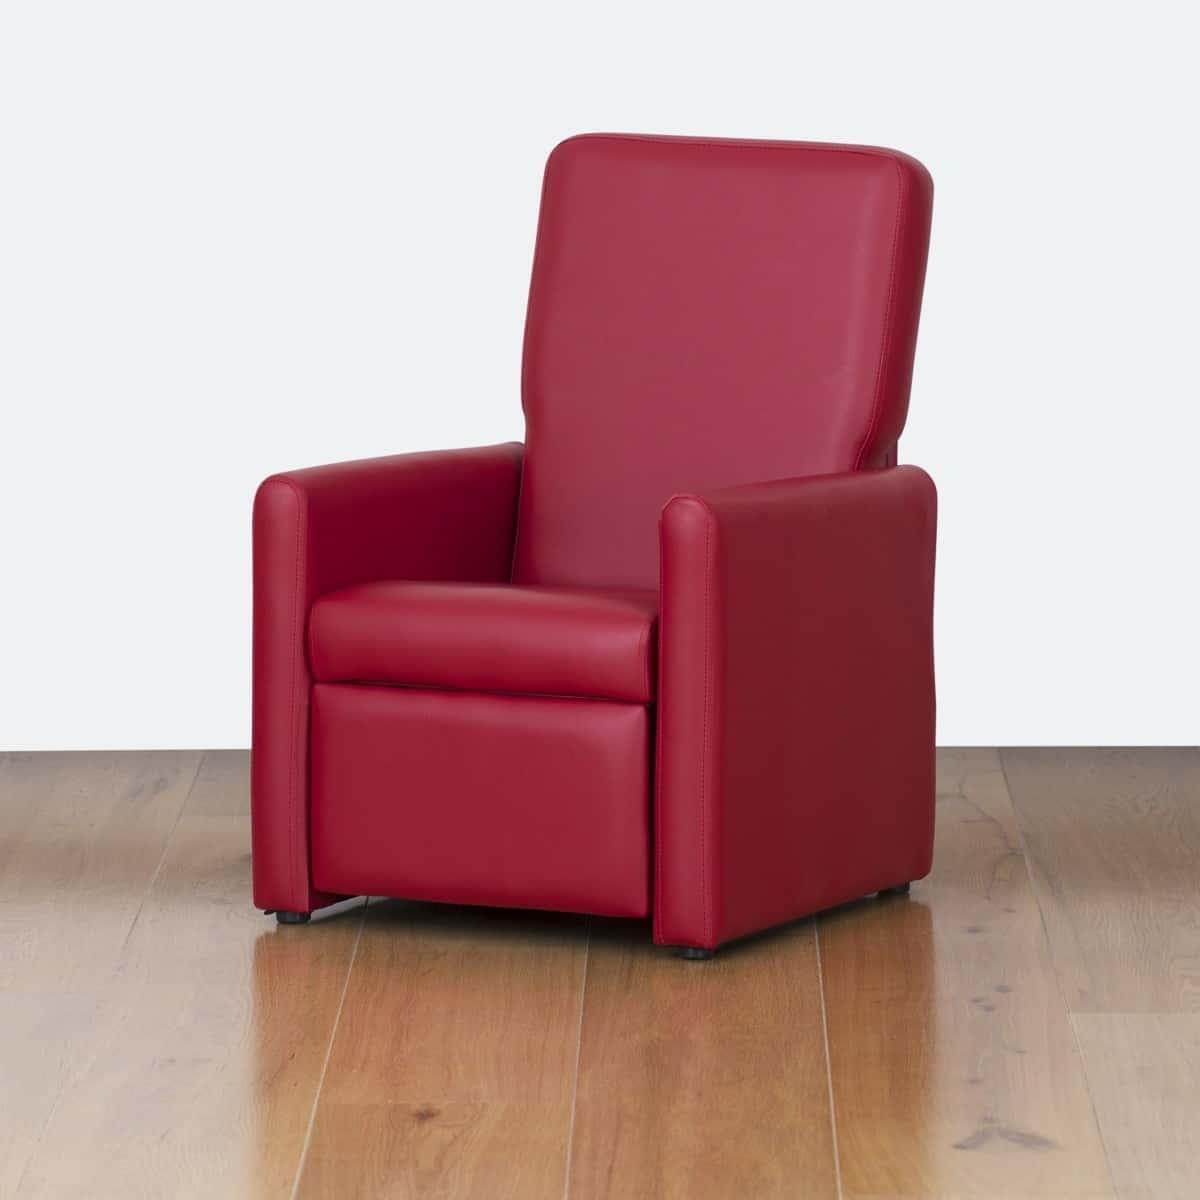 Watoto Kids Recliner Chair - Fire Engine Red